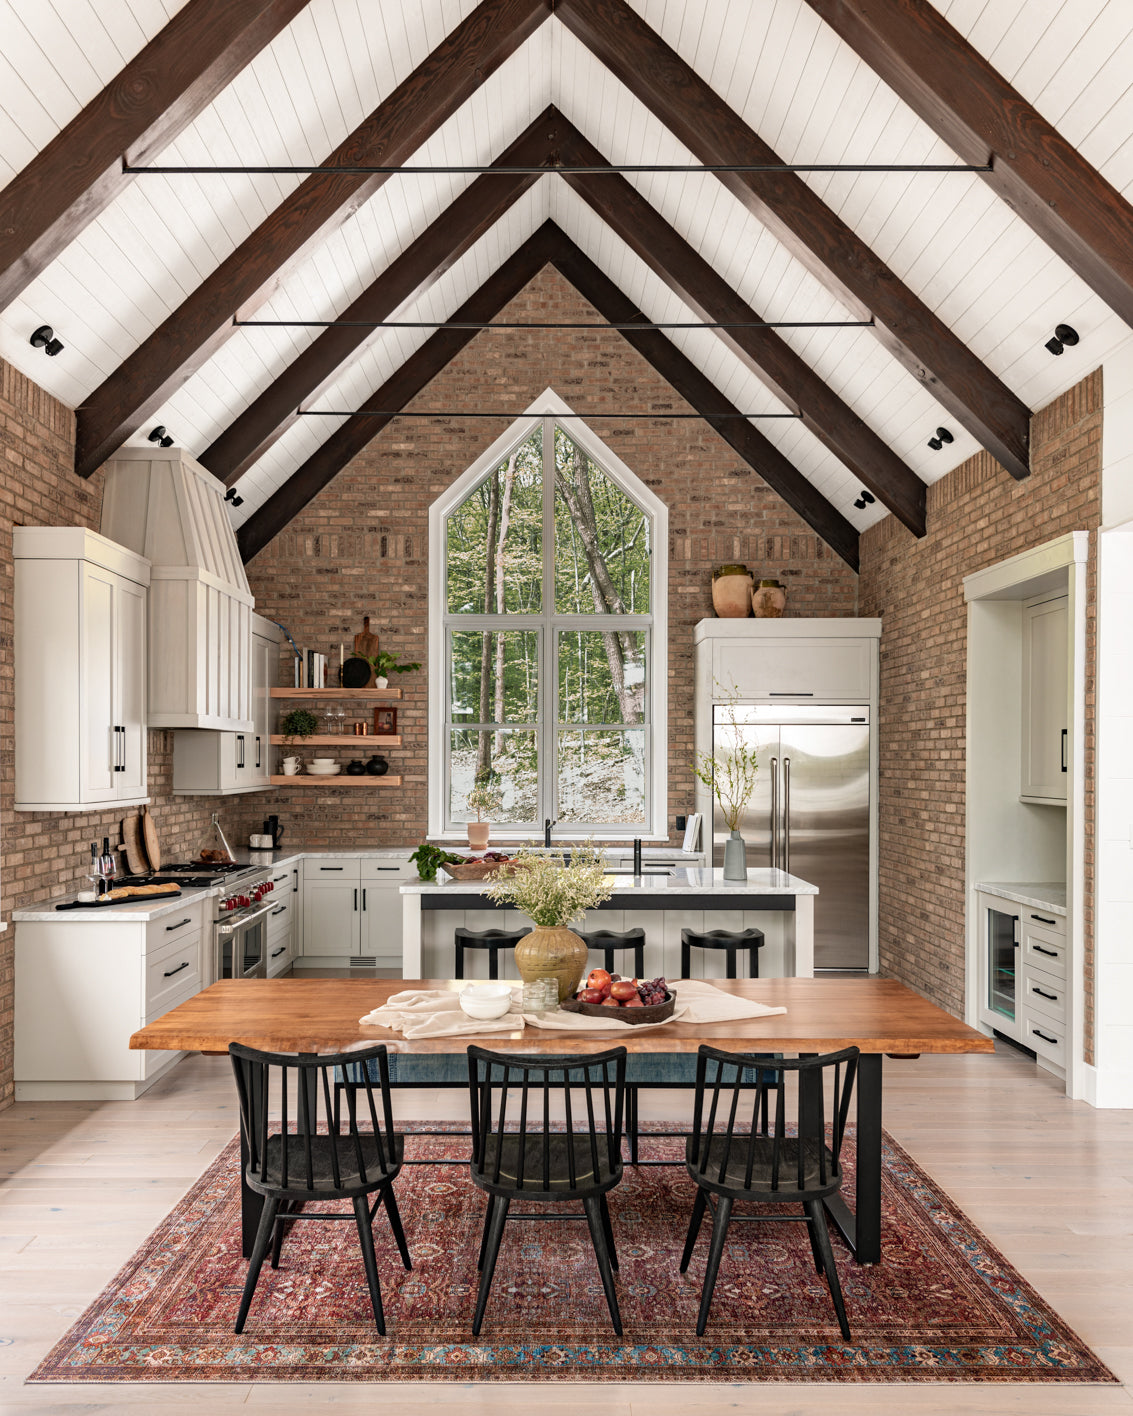 Kitchen with exposed brick wall.